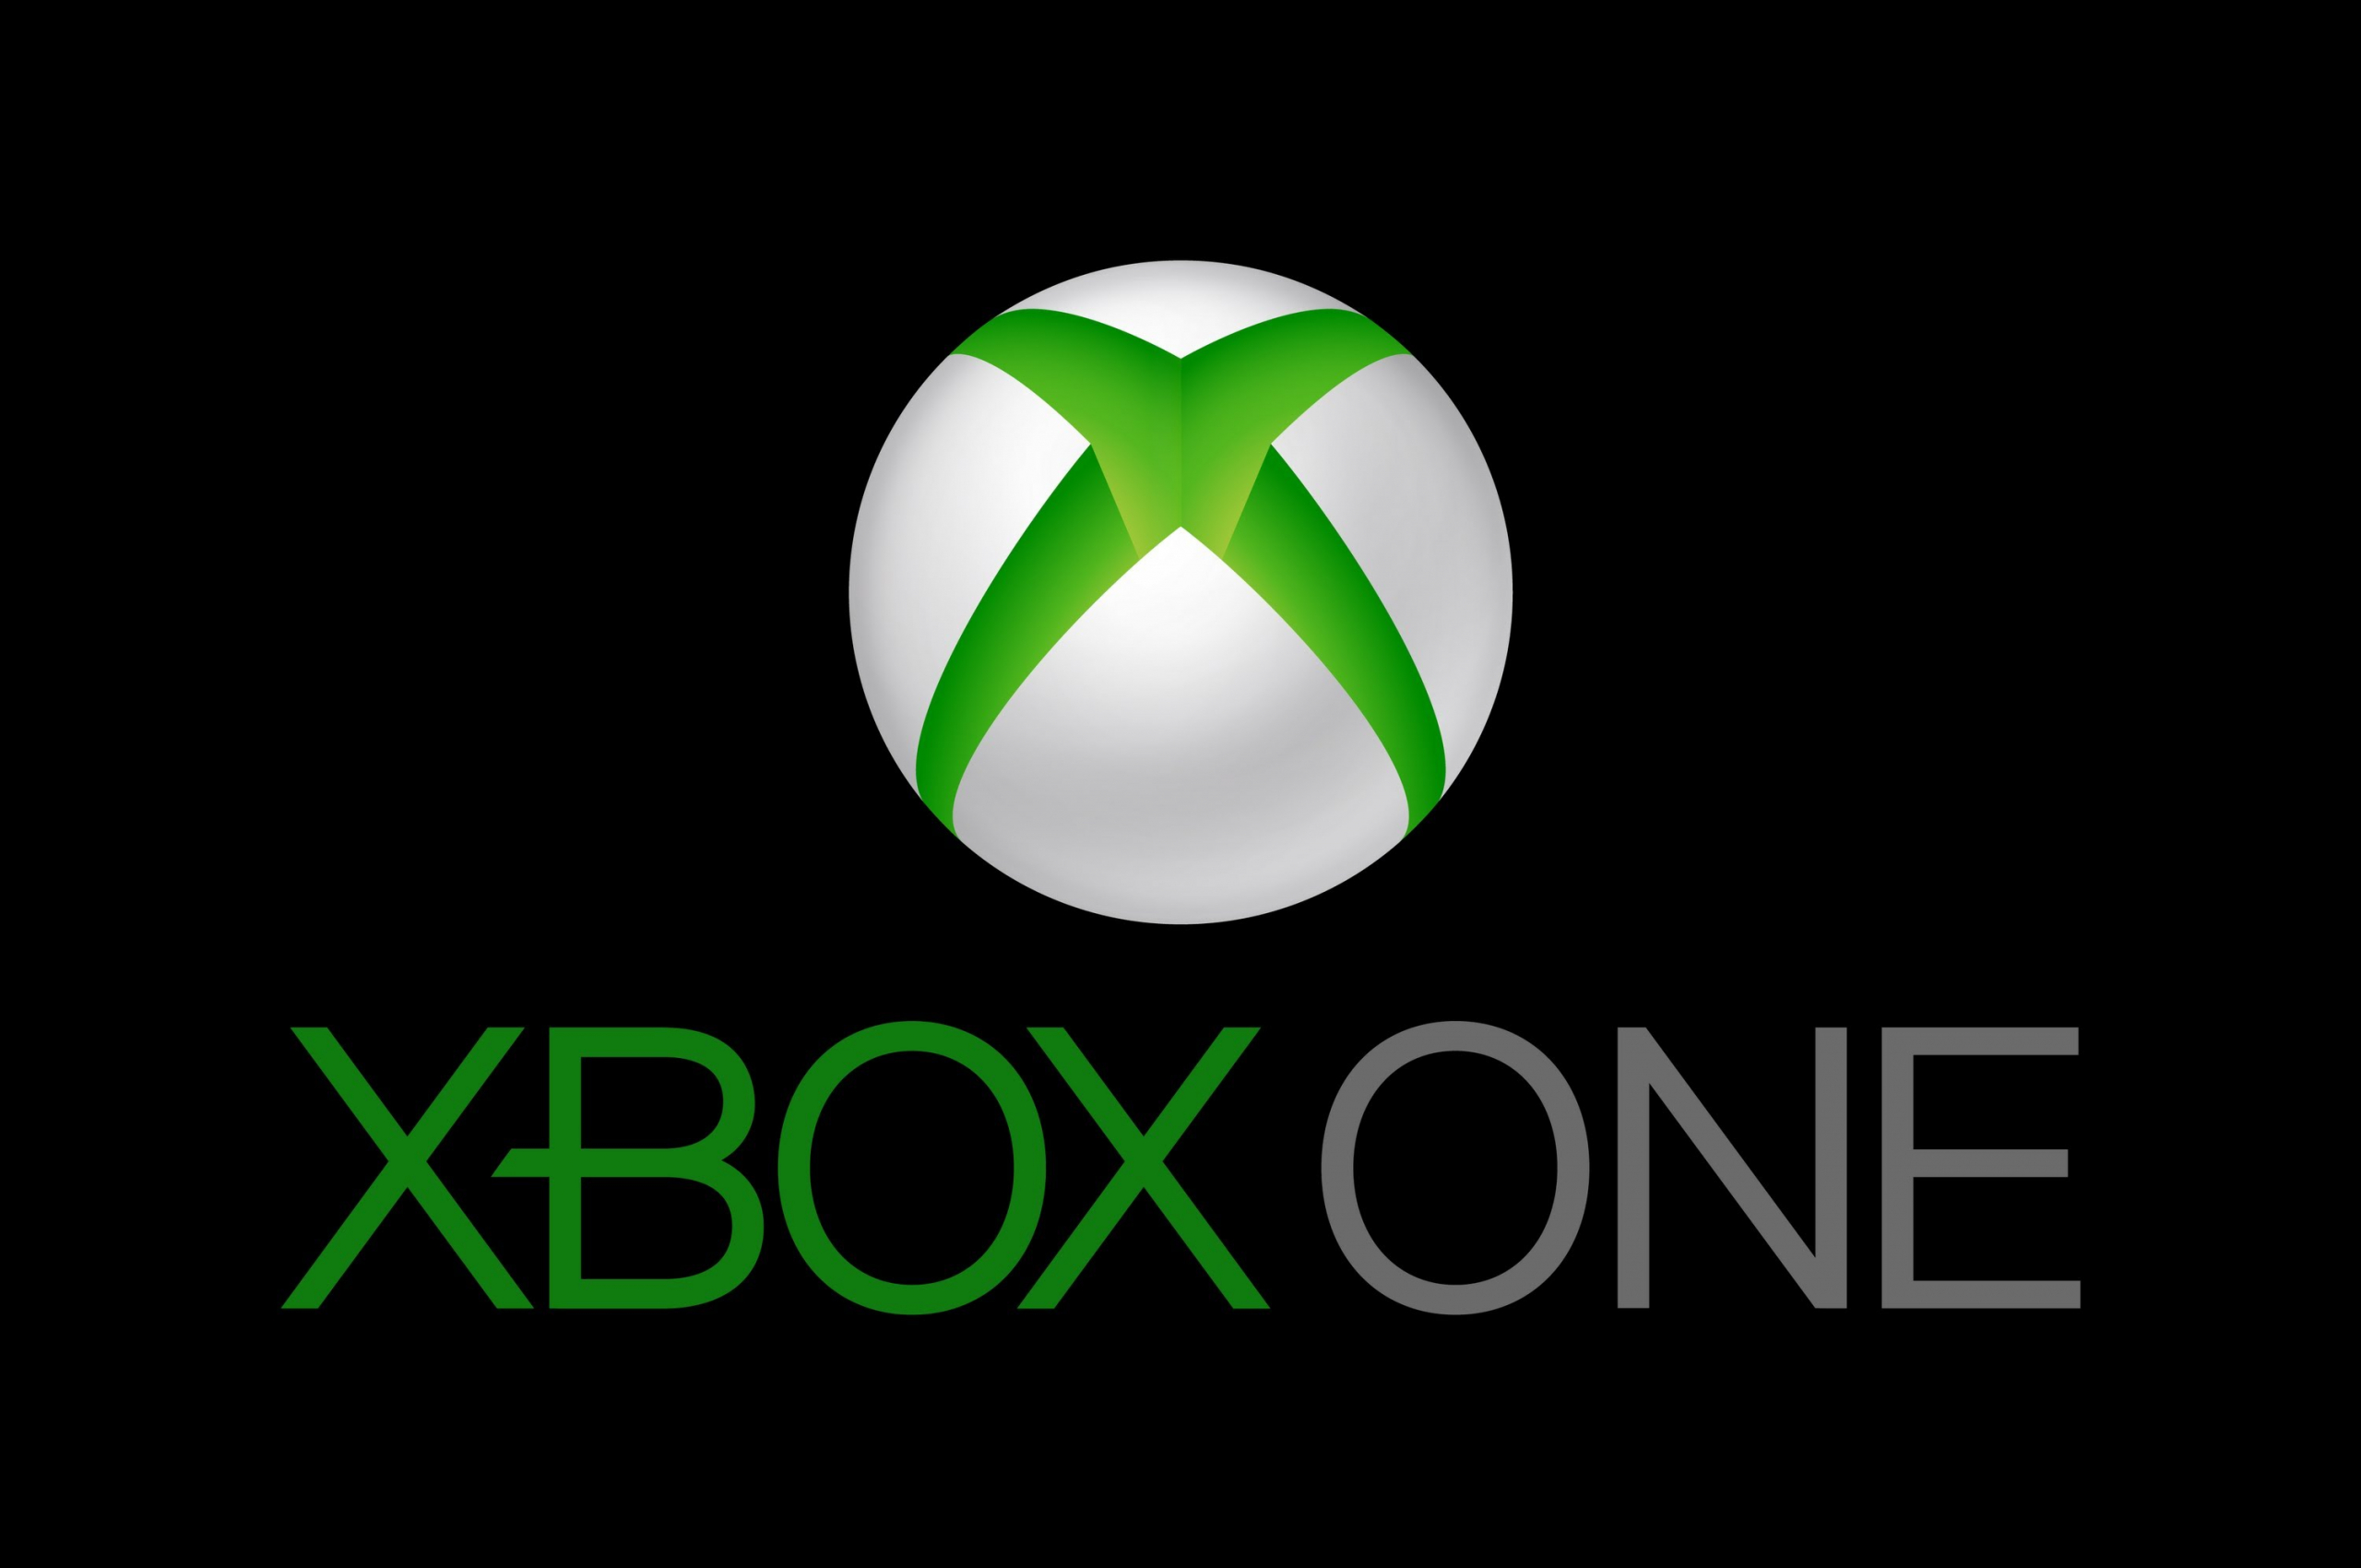 Free Download Xbox Logo Xbox One Hd Logo Wallpaper Xbox One Logo Xbox One 3000x2045 For Your Desktop Mobile Tablet Explore 49 Cool Wallpapers For Xbox One Xbox One